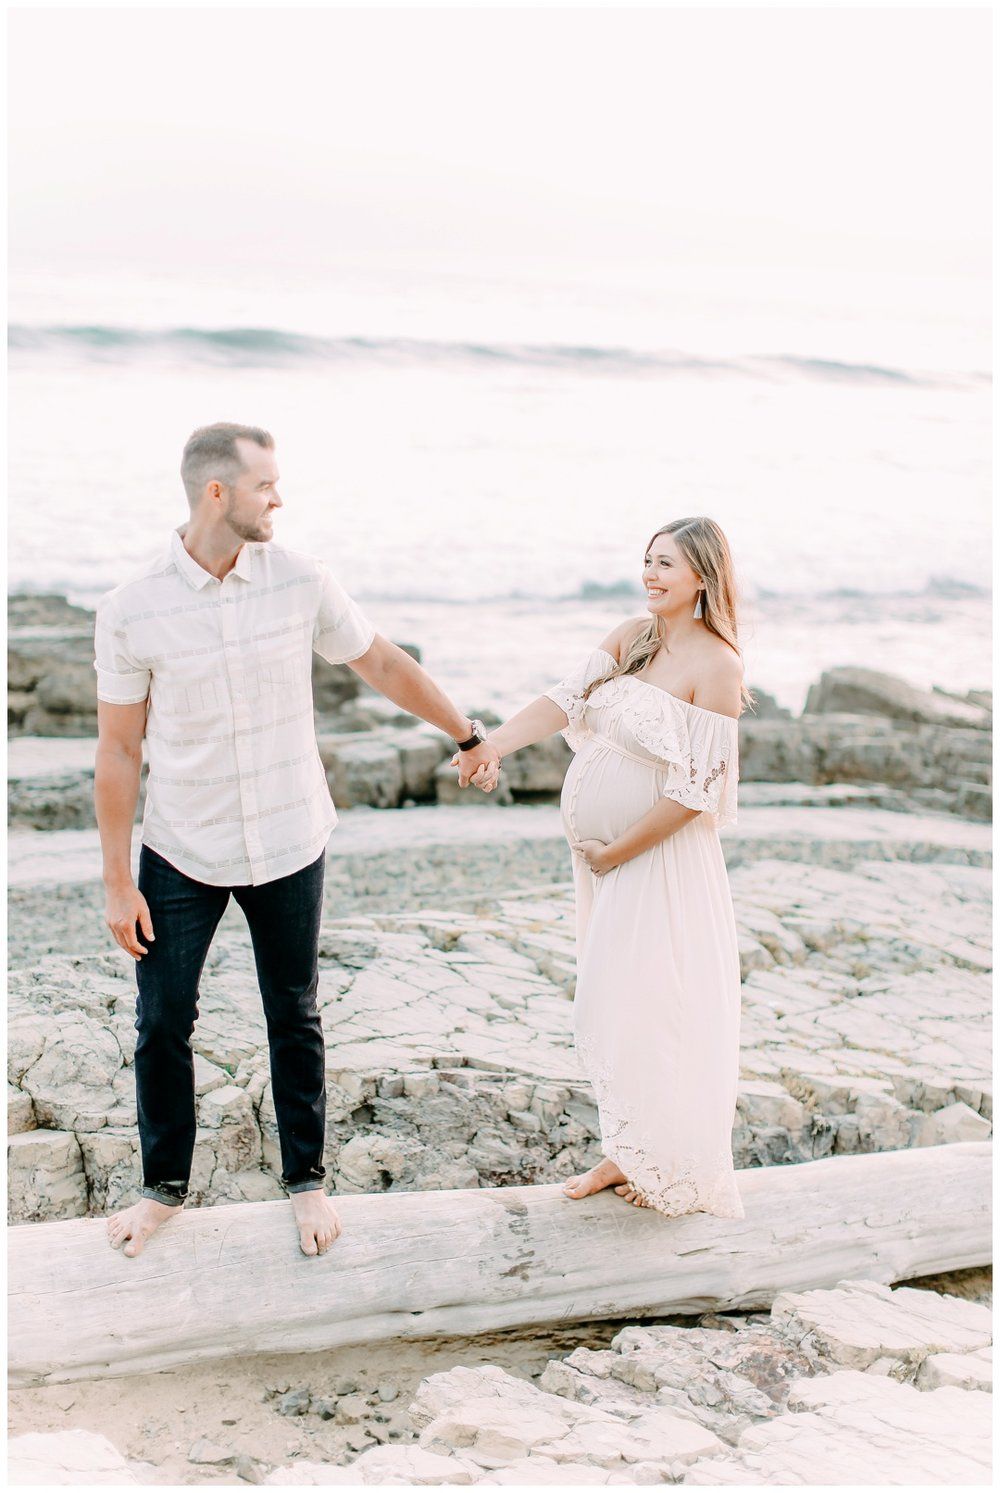 Newport_Beach_Maternity_Photographer_Beach_Maternity_Photography_Cori_Kleckner_Photography_1037.jpg